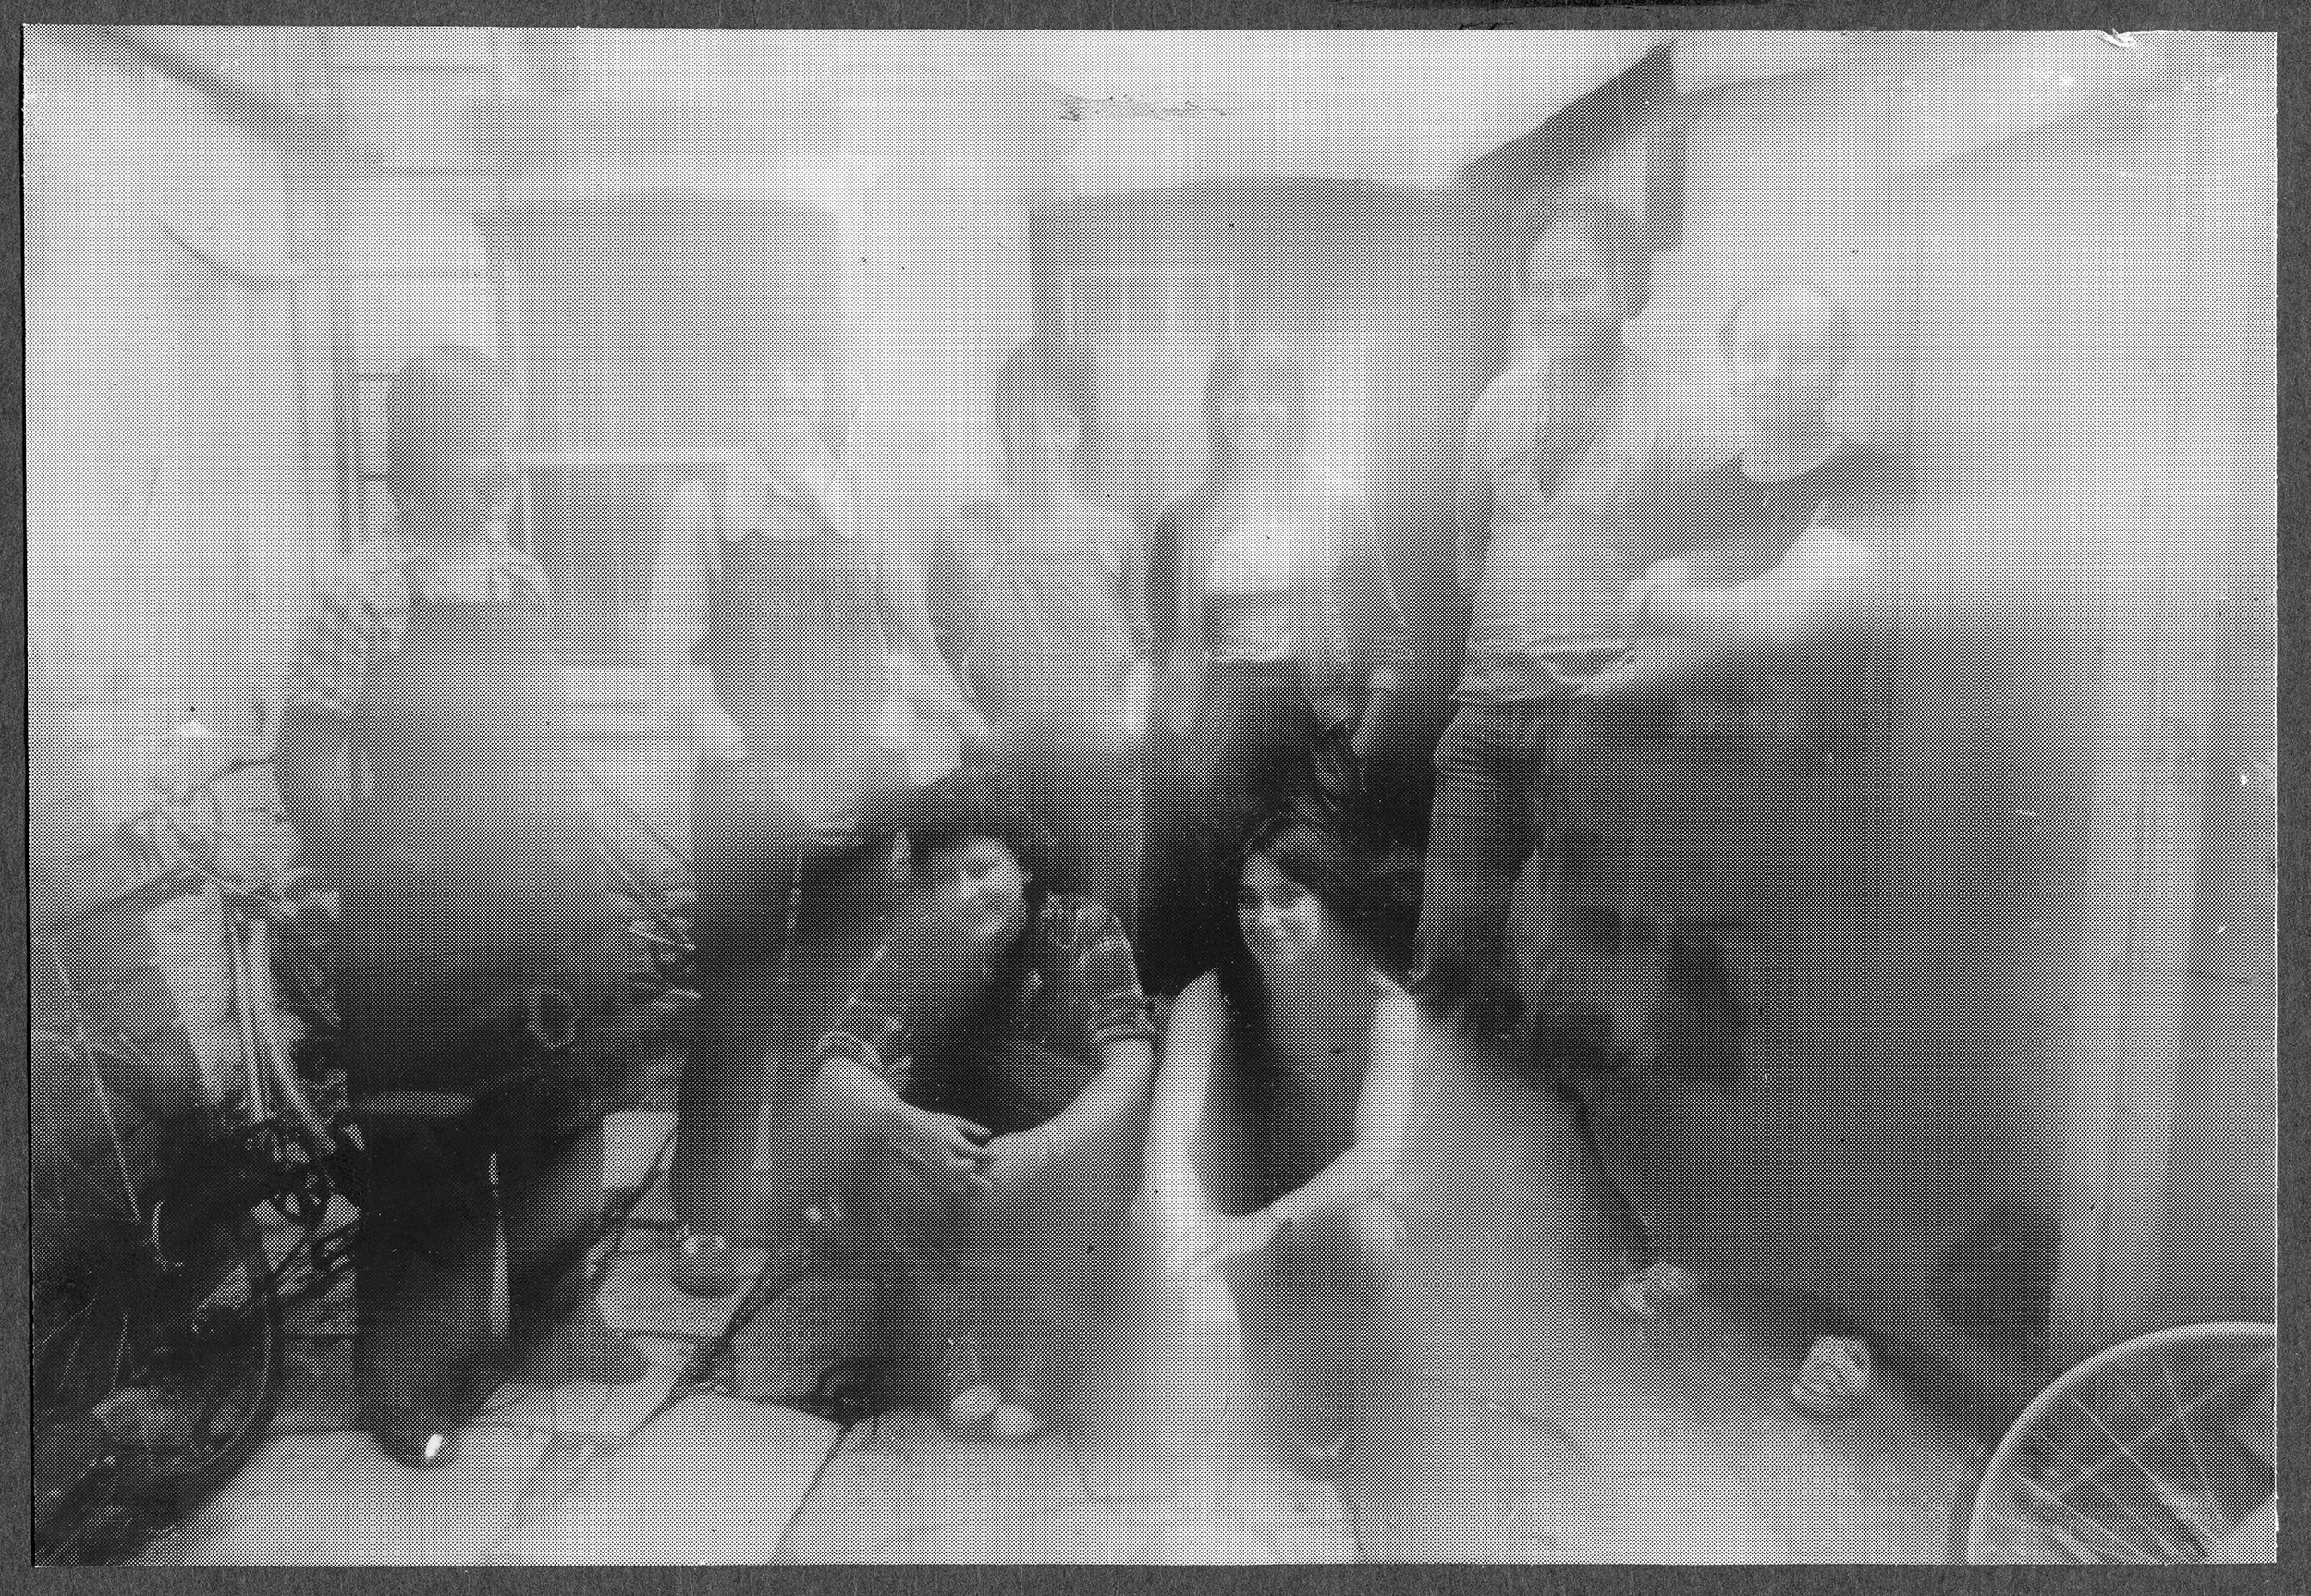 Manipulated photo of a group of people